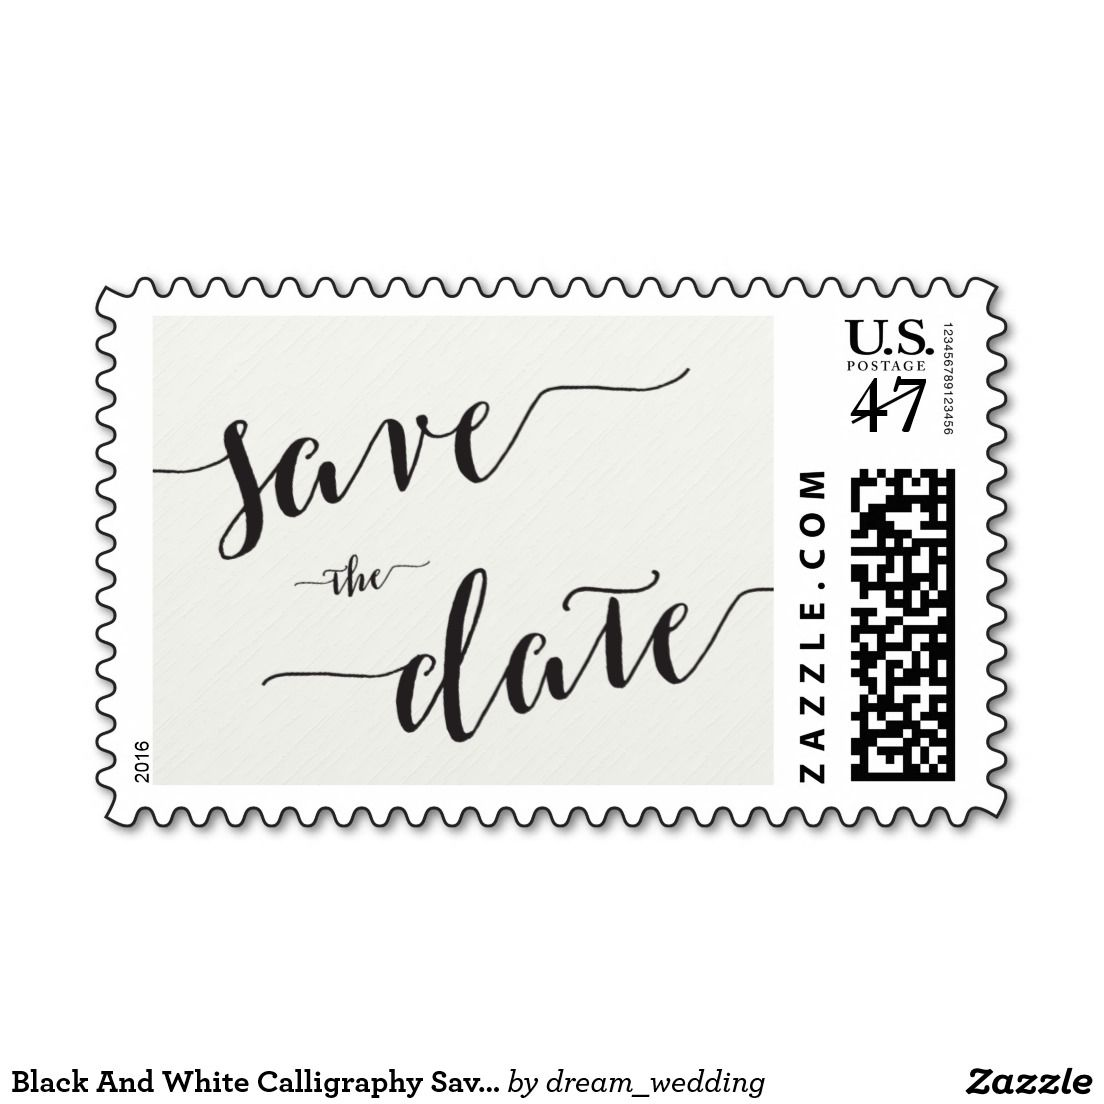 Black And White Calligraphy Save The Date Stamps